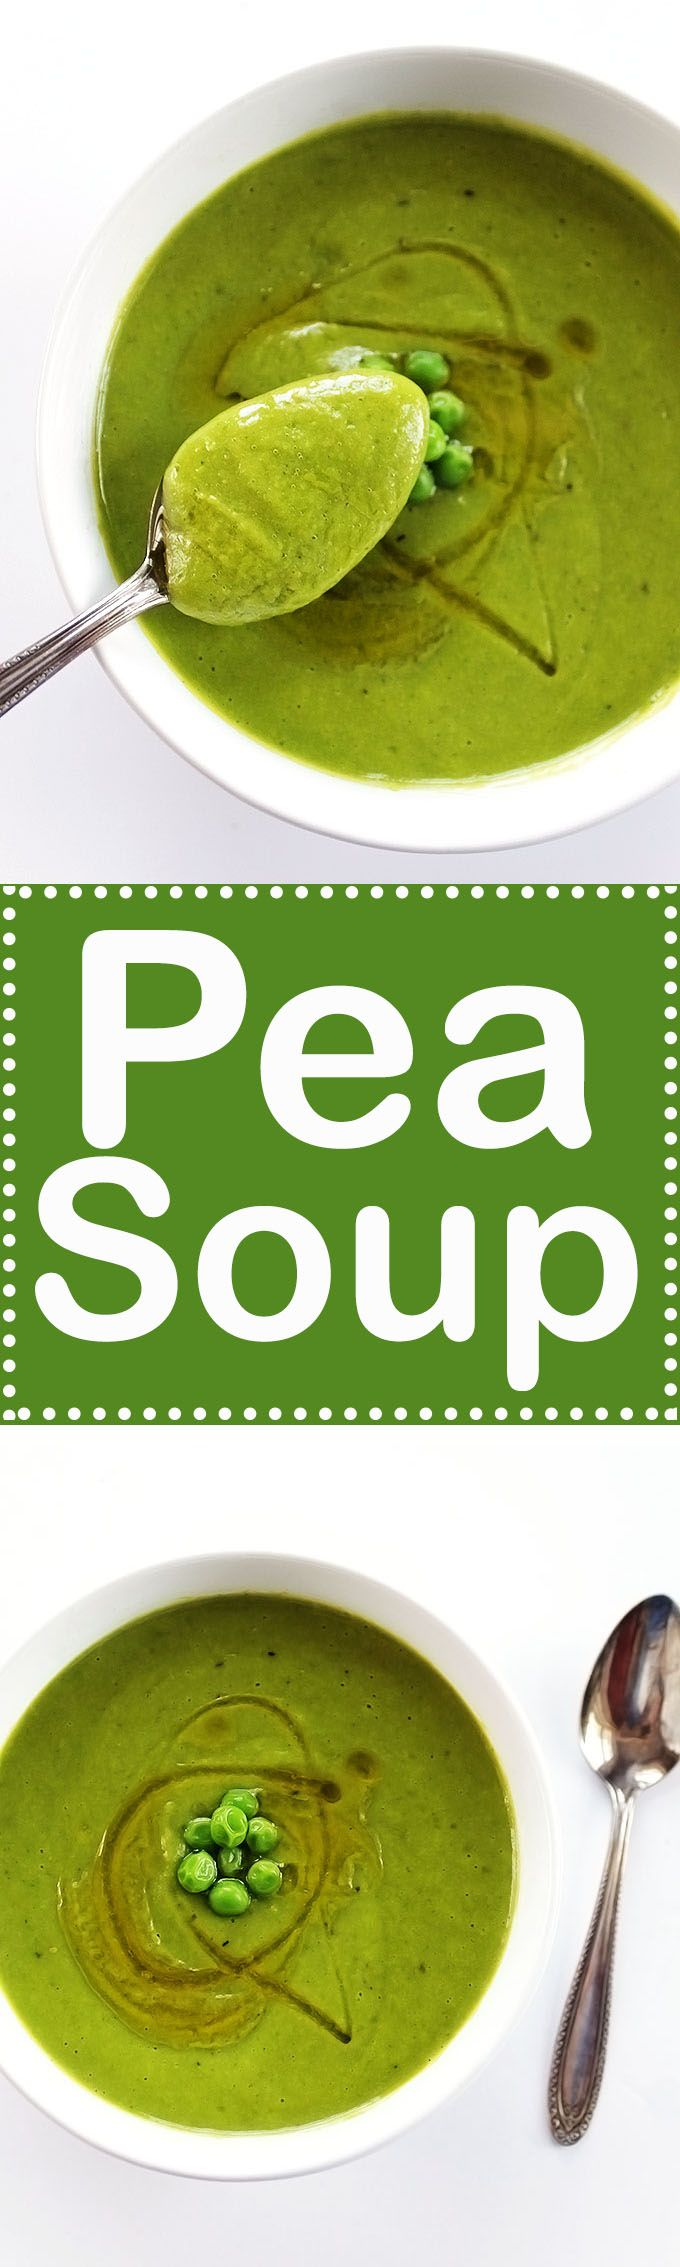 Pea Soup - A simple soup recipe that only requires 7 ingredients and 20 minutes! Refresthing, and pererfect for spring! Vegan/Gluten Free!   robustrecipes.com